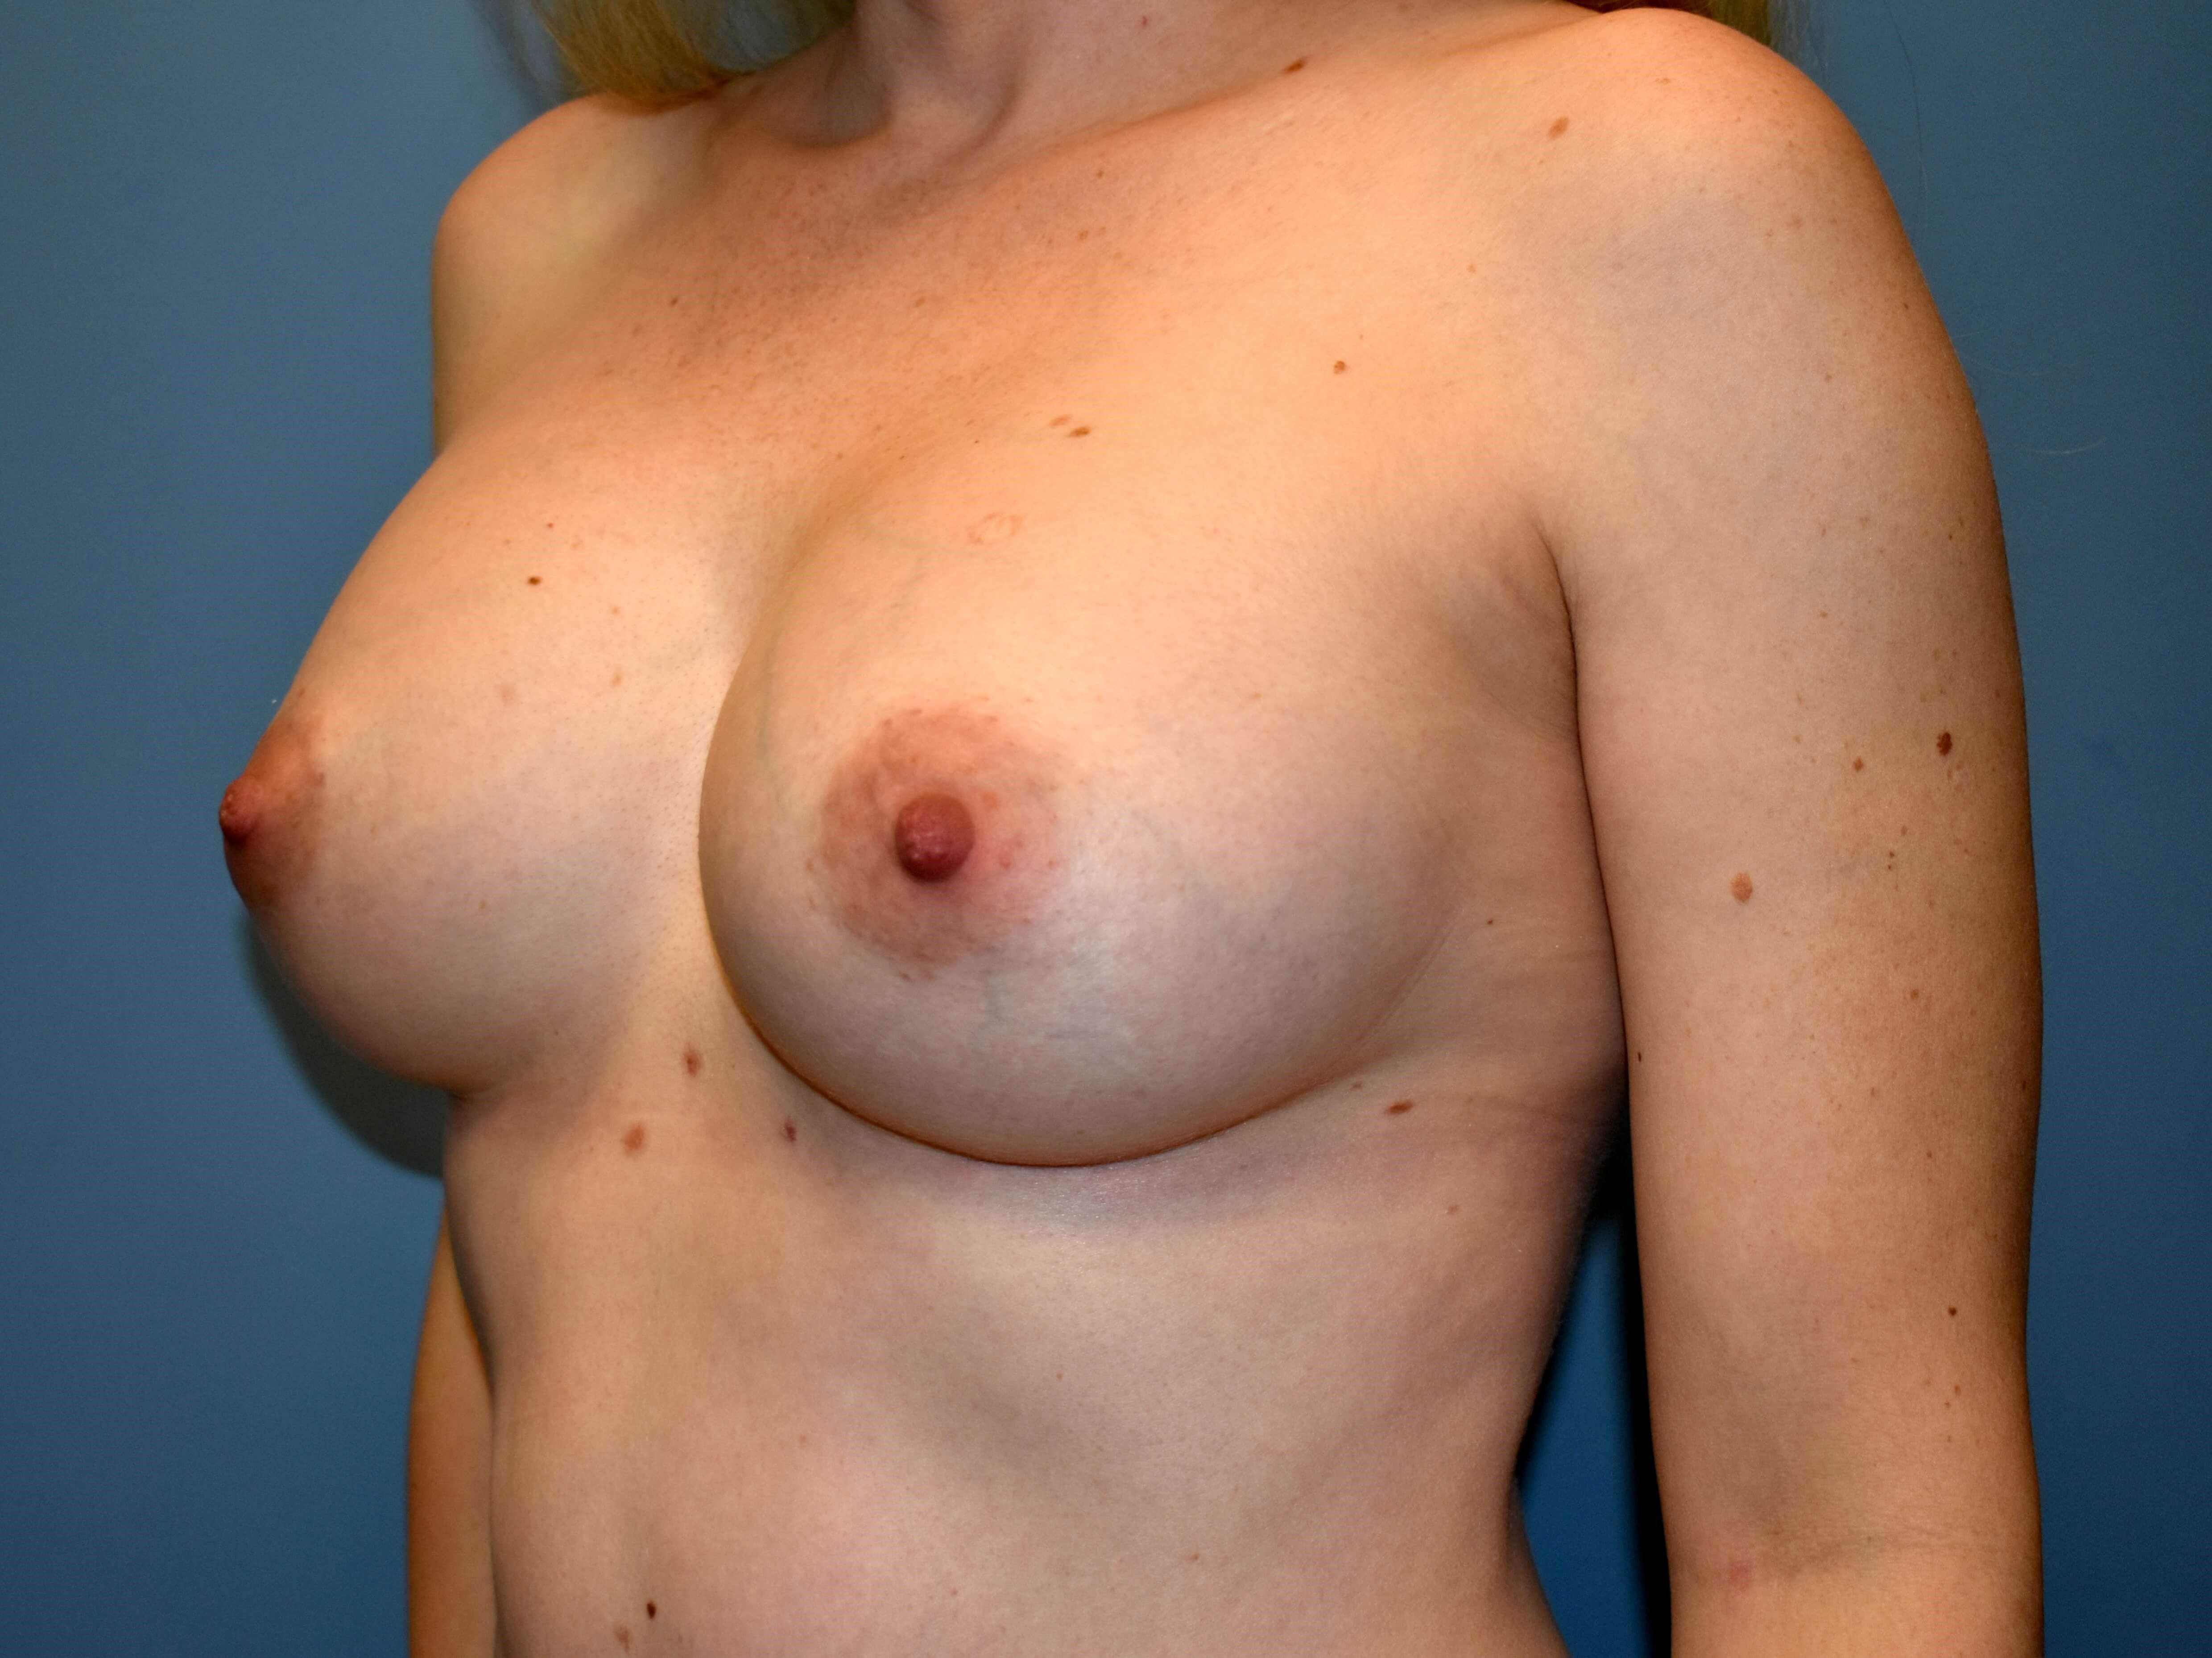 Left Angle - Breasts After